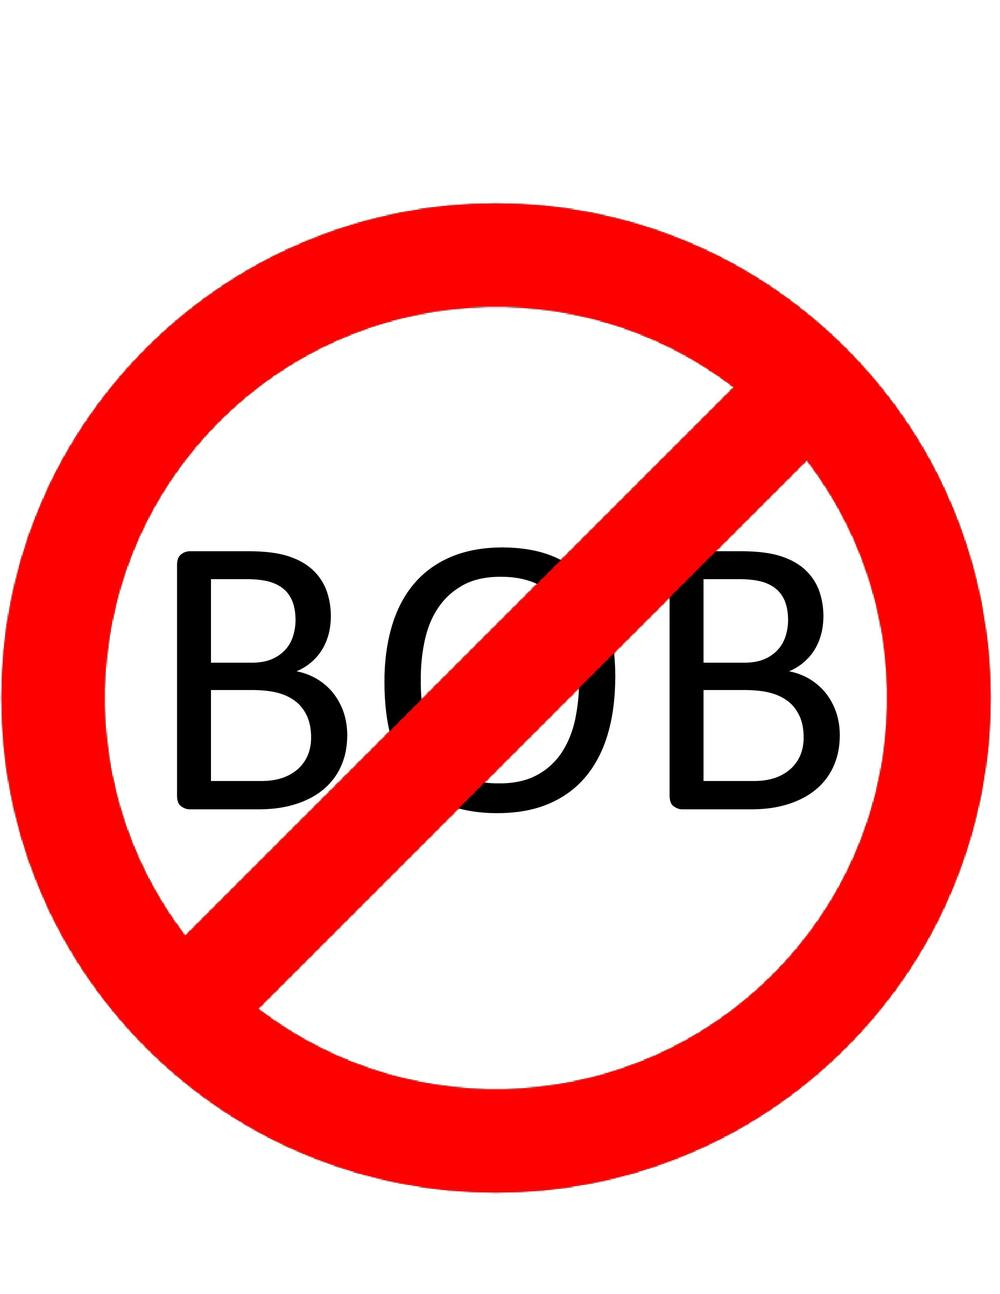 Say no to BOB!